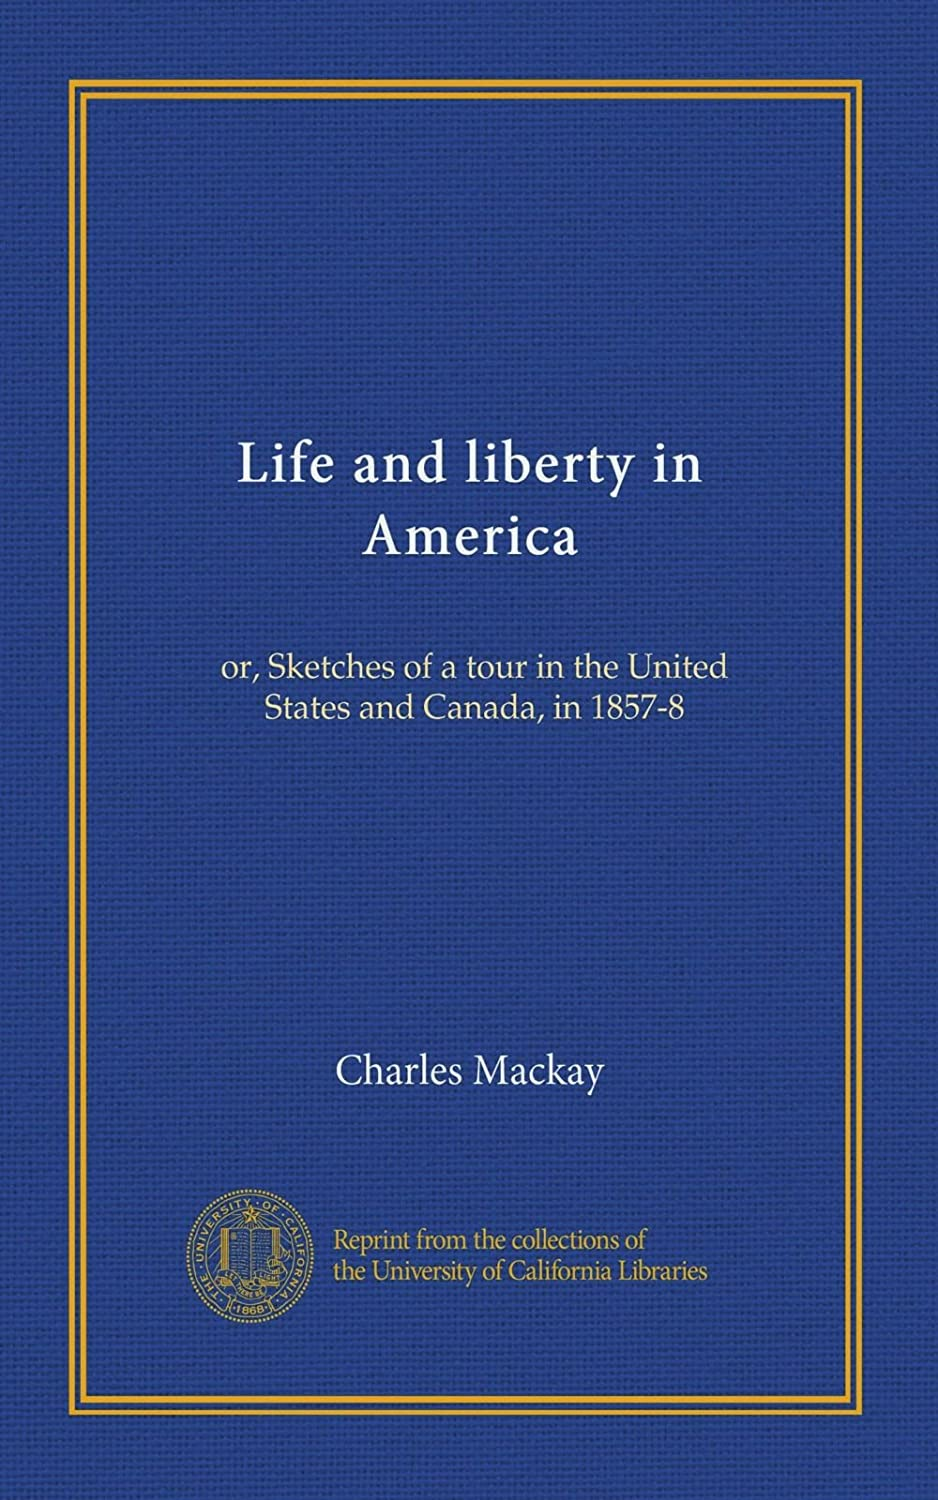 Life and liberty in America (v.1): or, Sketches of a tour in the United States and Canada, in 1857-8